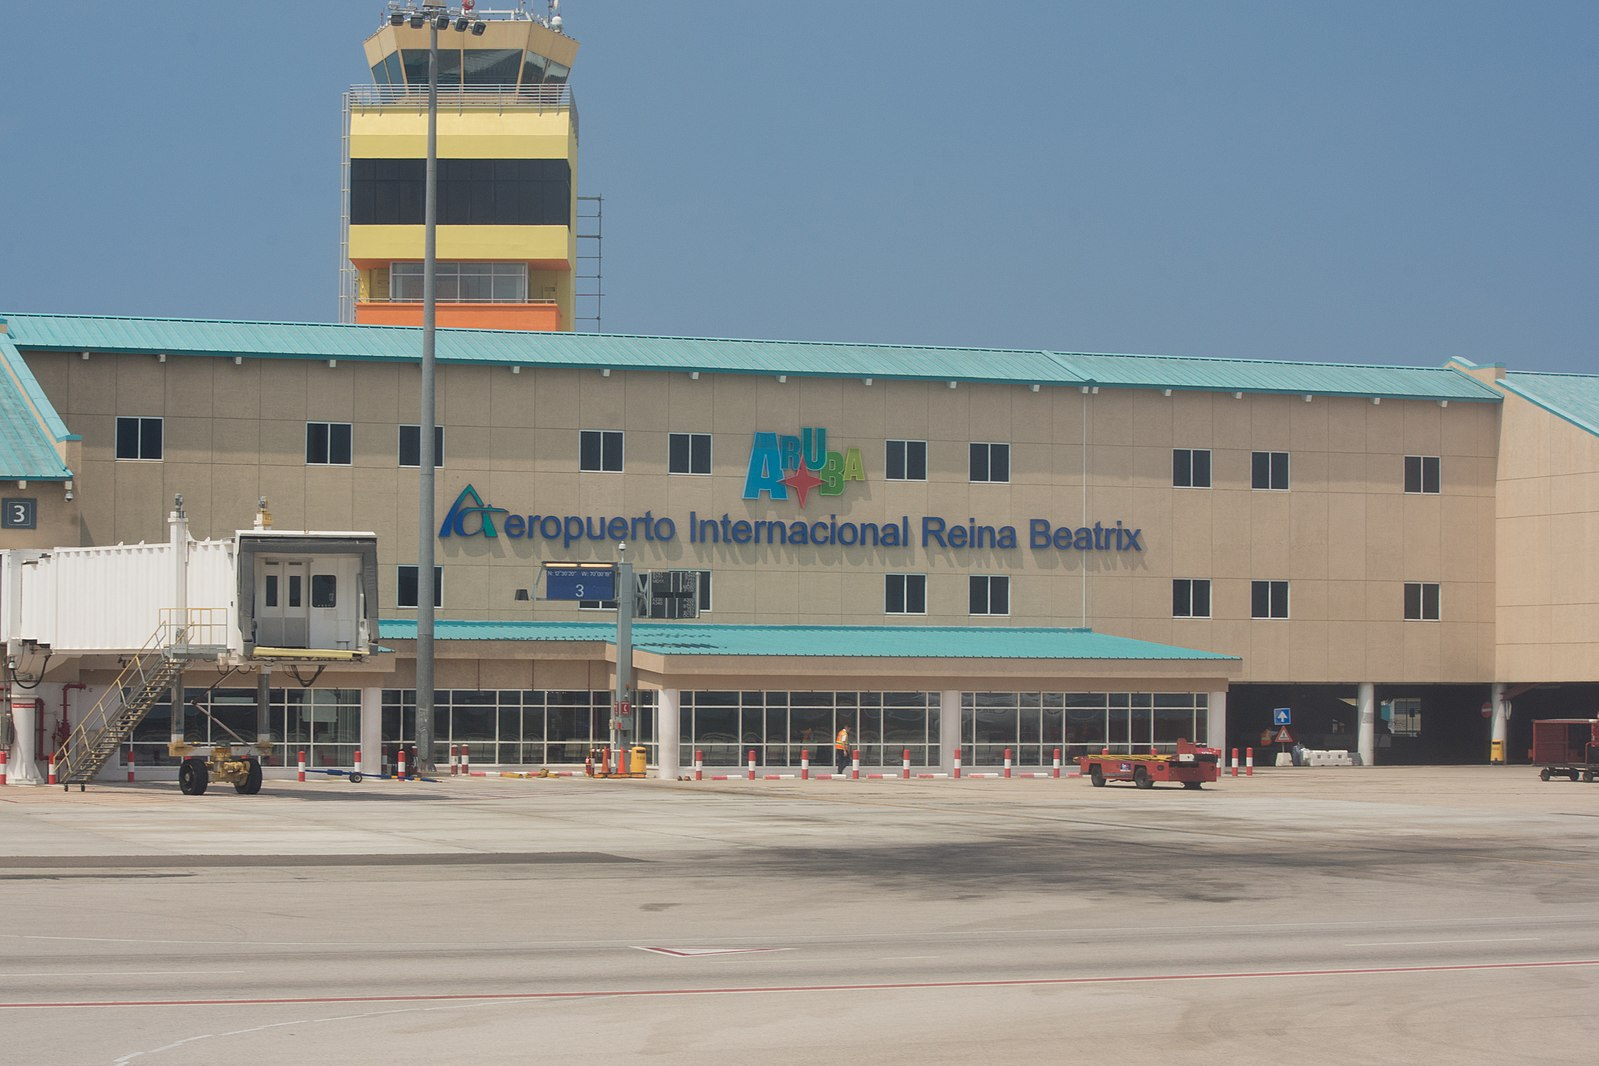 Queen Beatrix International Airport serves Aruba island in the Dutch Caribbean.